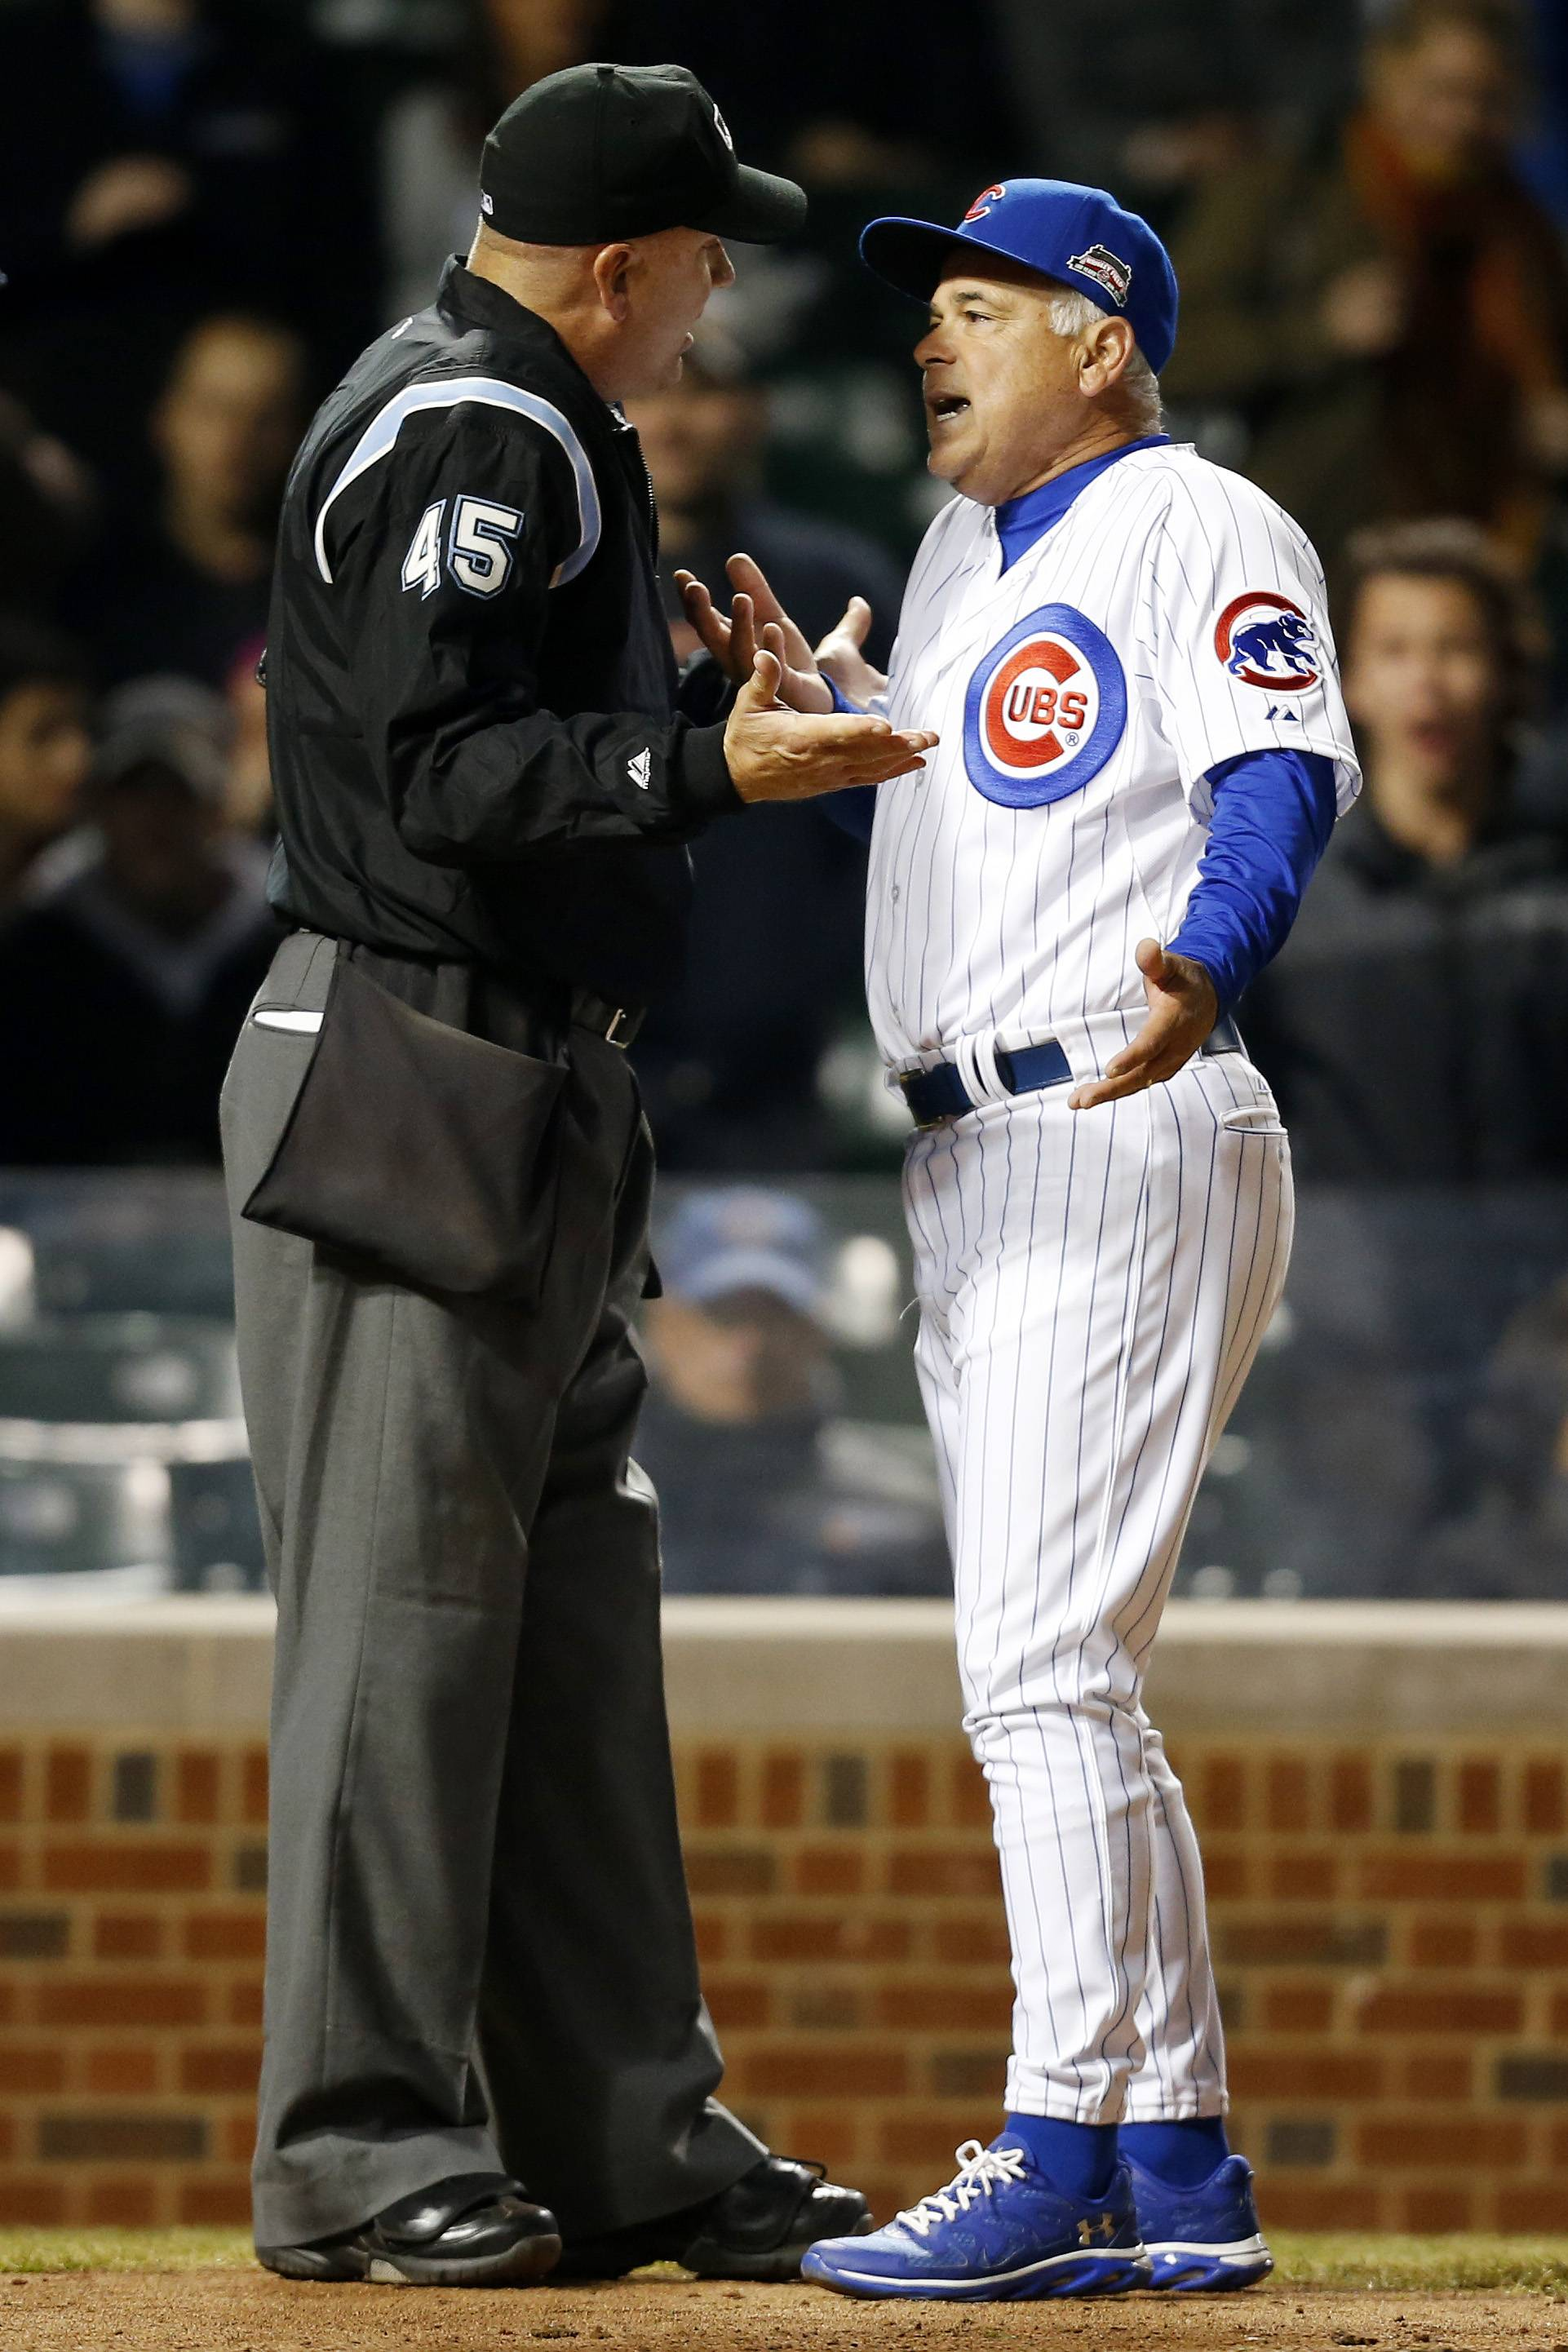 Umpire Jeff Nelson and Chicago Cubs manager Rick Renteria argue a call during the ninth inning of a baseball game against the Pittsburgh Pirates on Tuesday, April 8, 2014, in Chicago. Chicago Cubs manager Rick Renteria was ejected from the game following the argument. The Pittsburgh Pirates won 7-6. (AP Photo/Andrew A. Nelles)